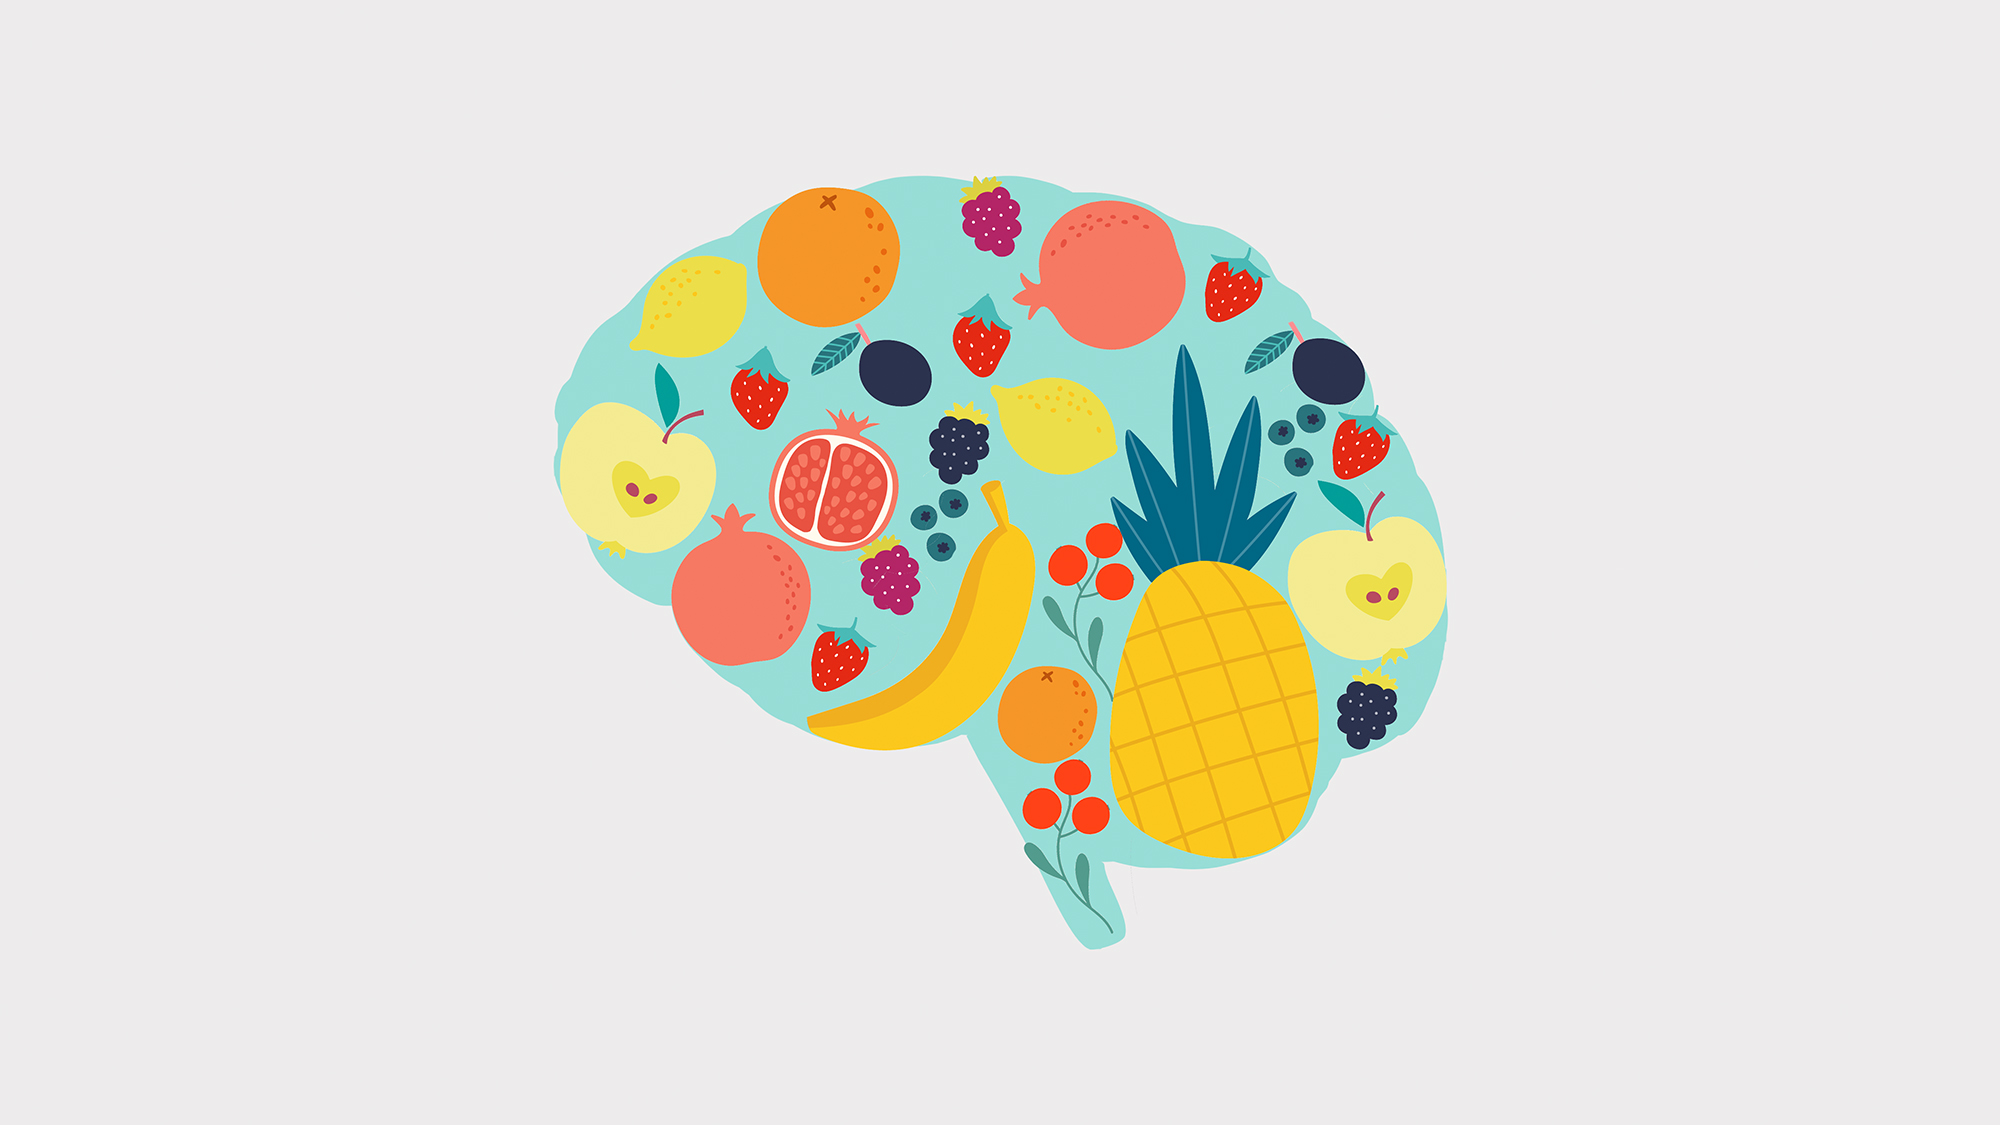 an illustration of a brain shape made out of fruit